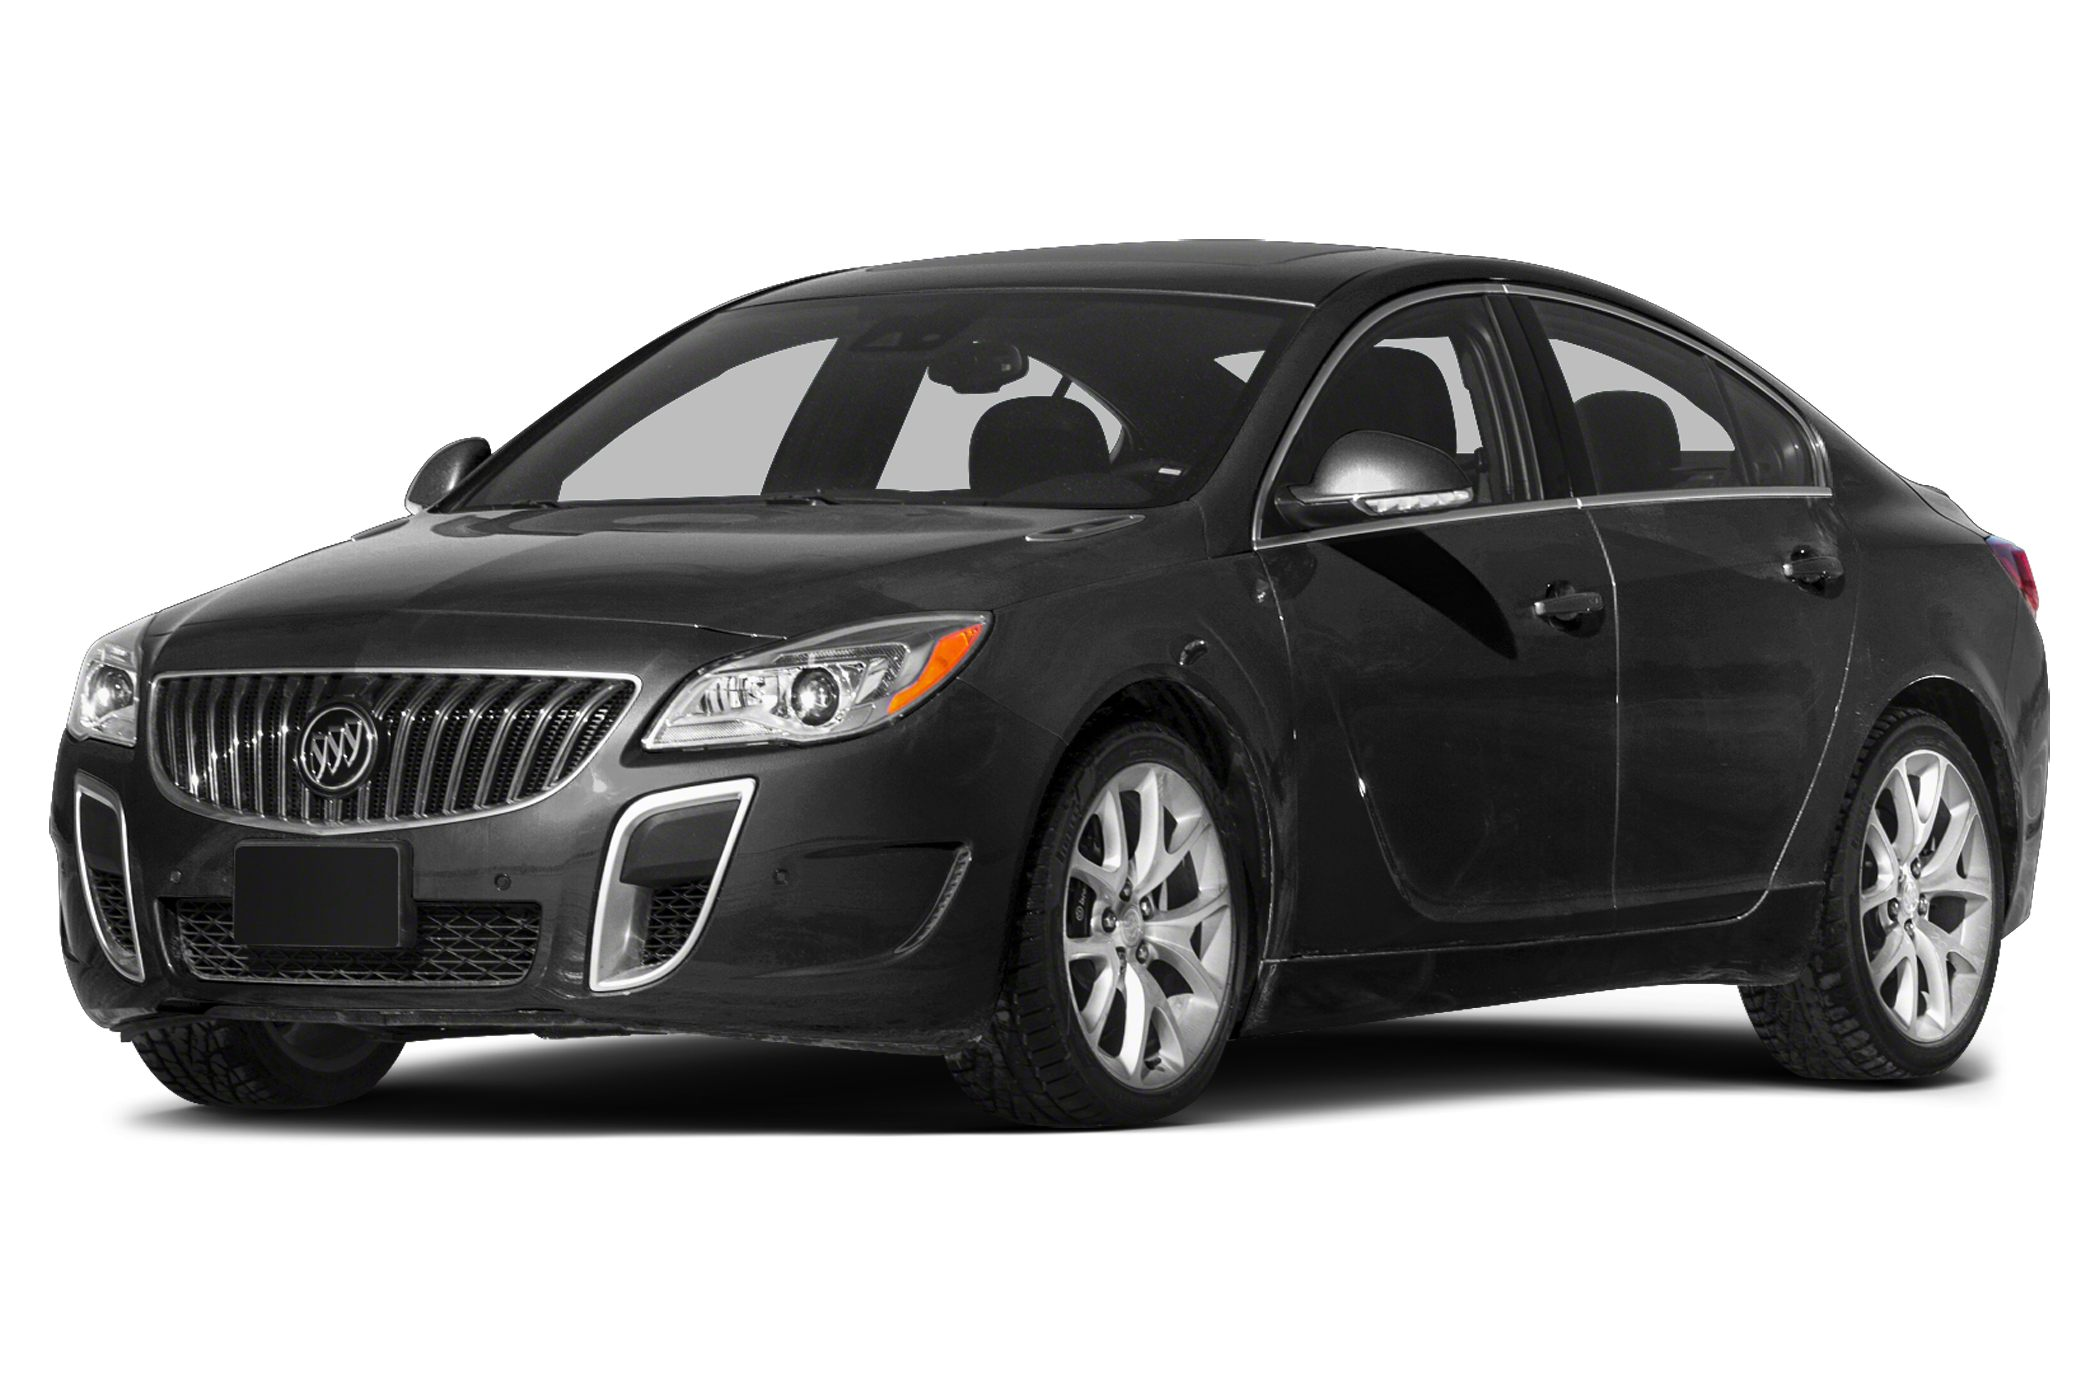 2014 Buick Regal GS Sedan for sale in Lancaster for $42,410 with 0 miles